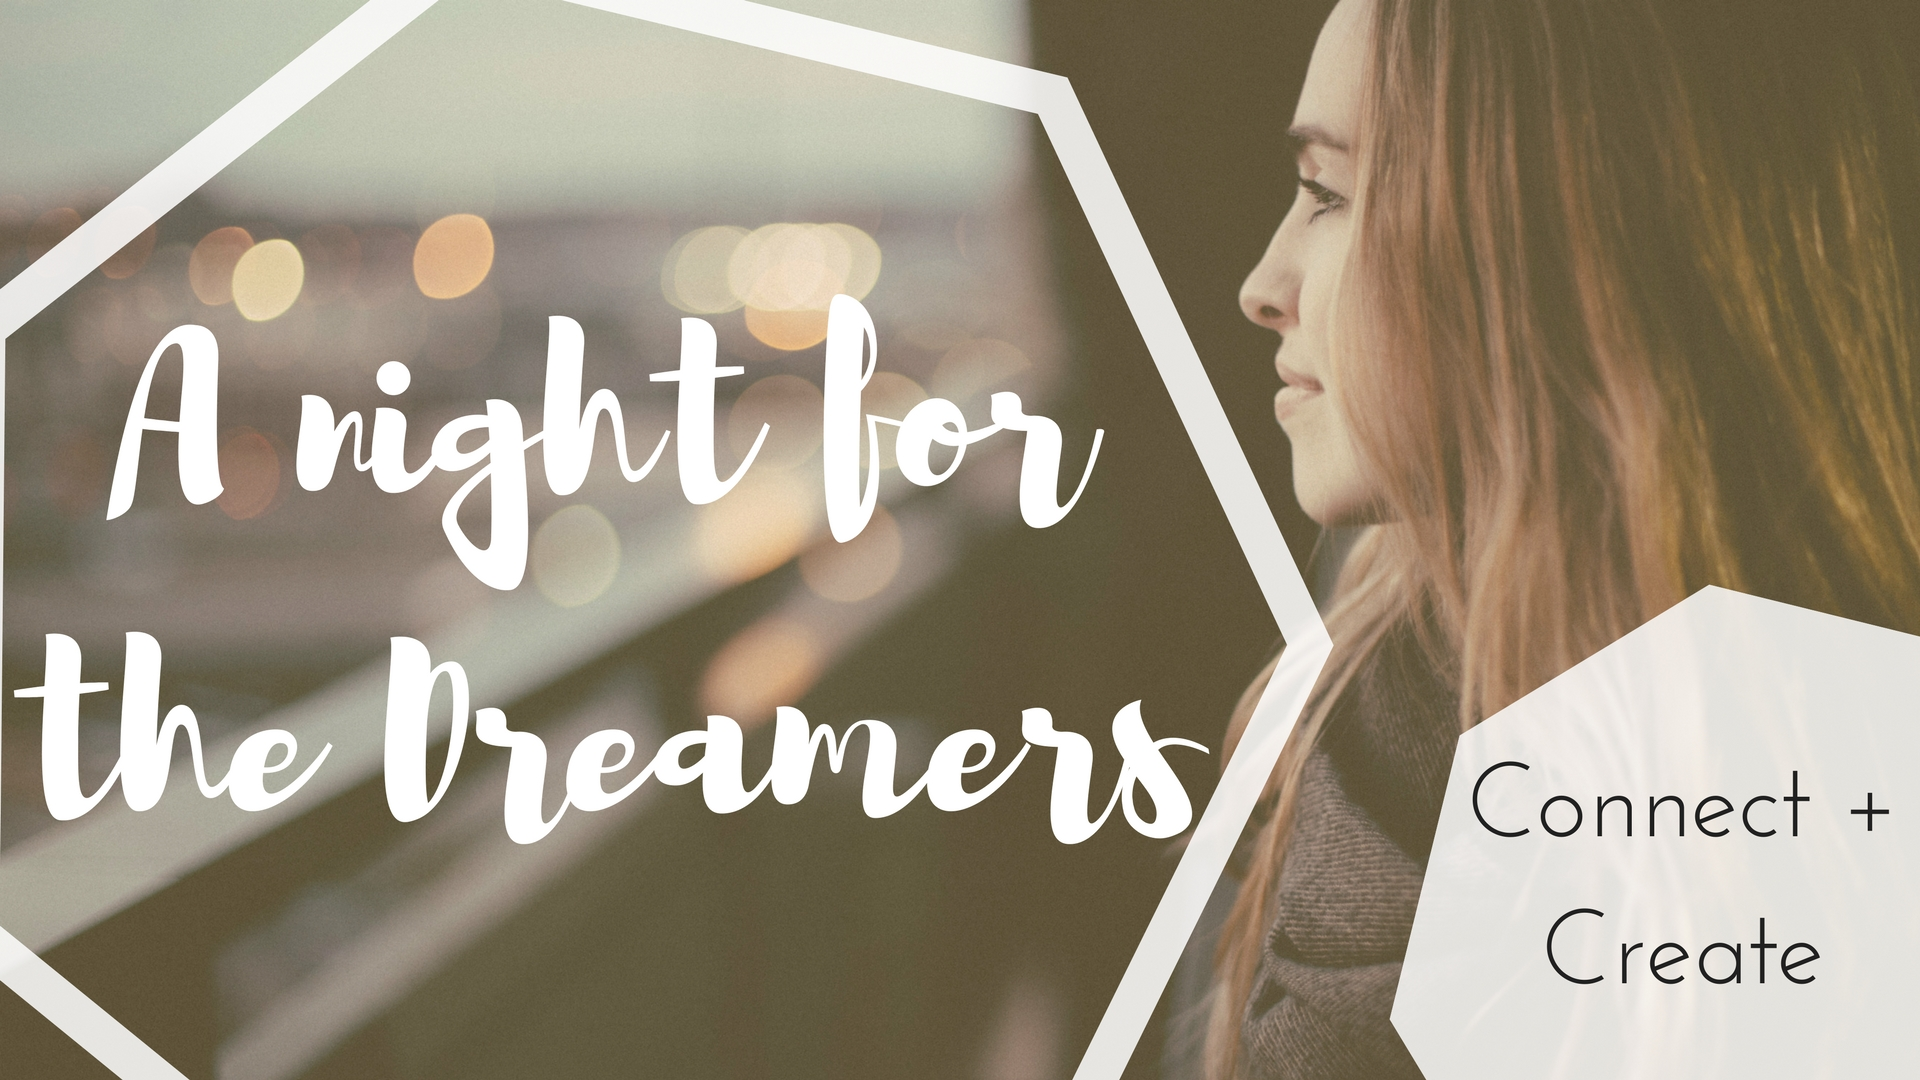 A night for the dreamers